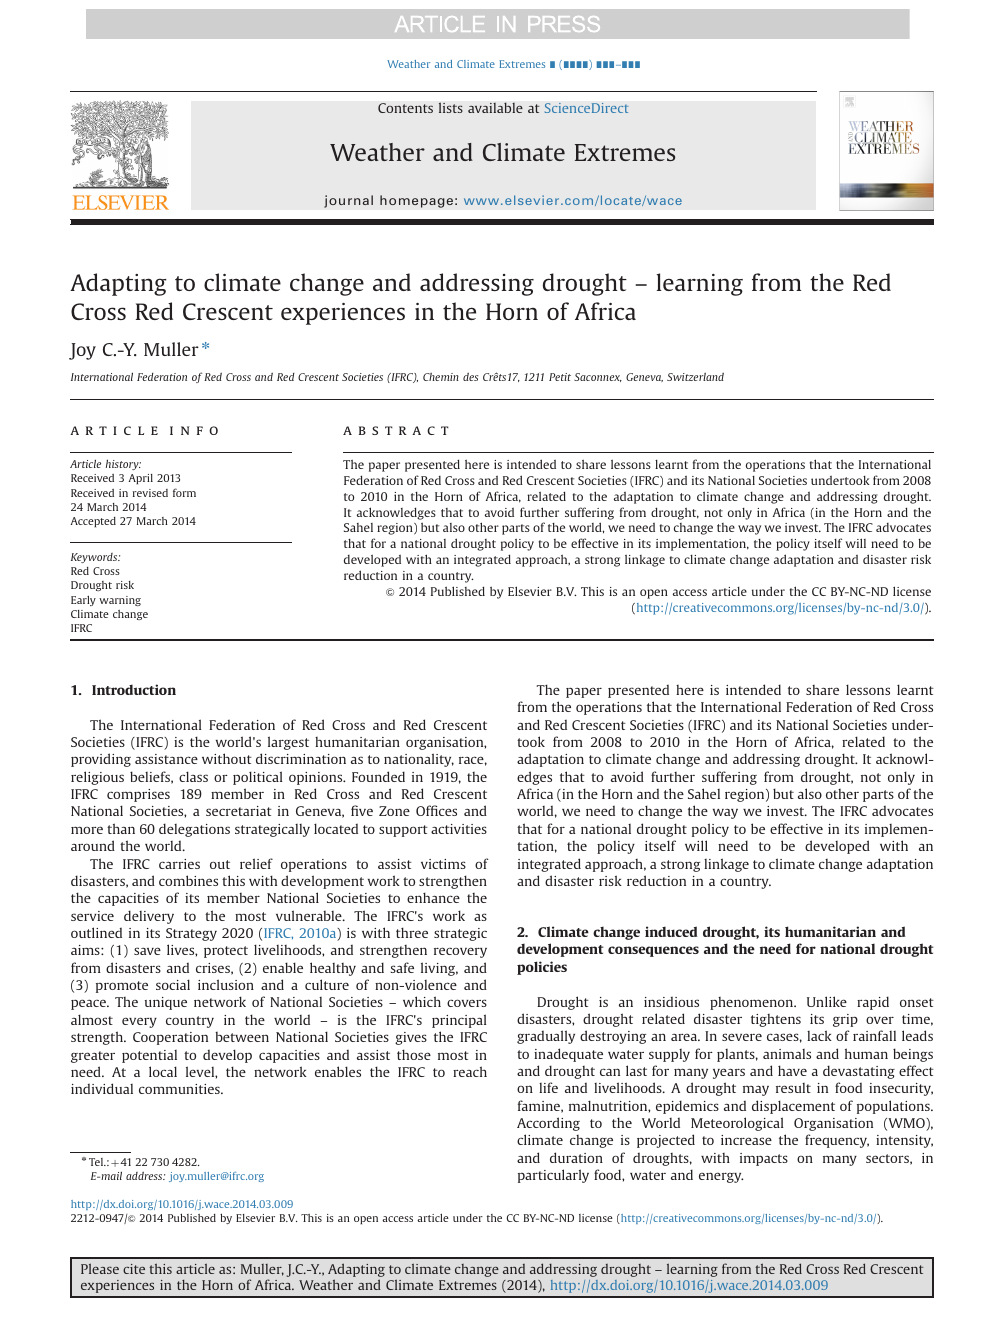 Adapting to climate change and addressing drought – learning